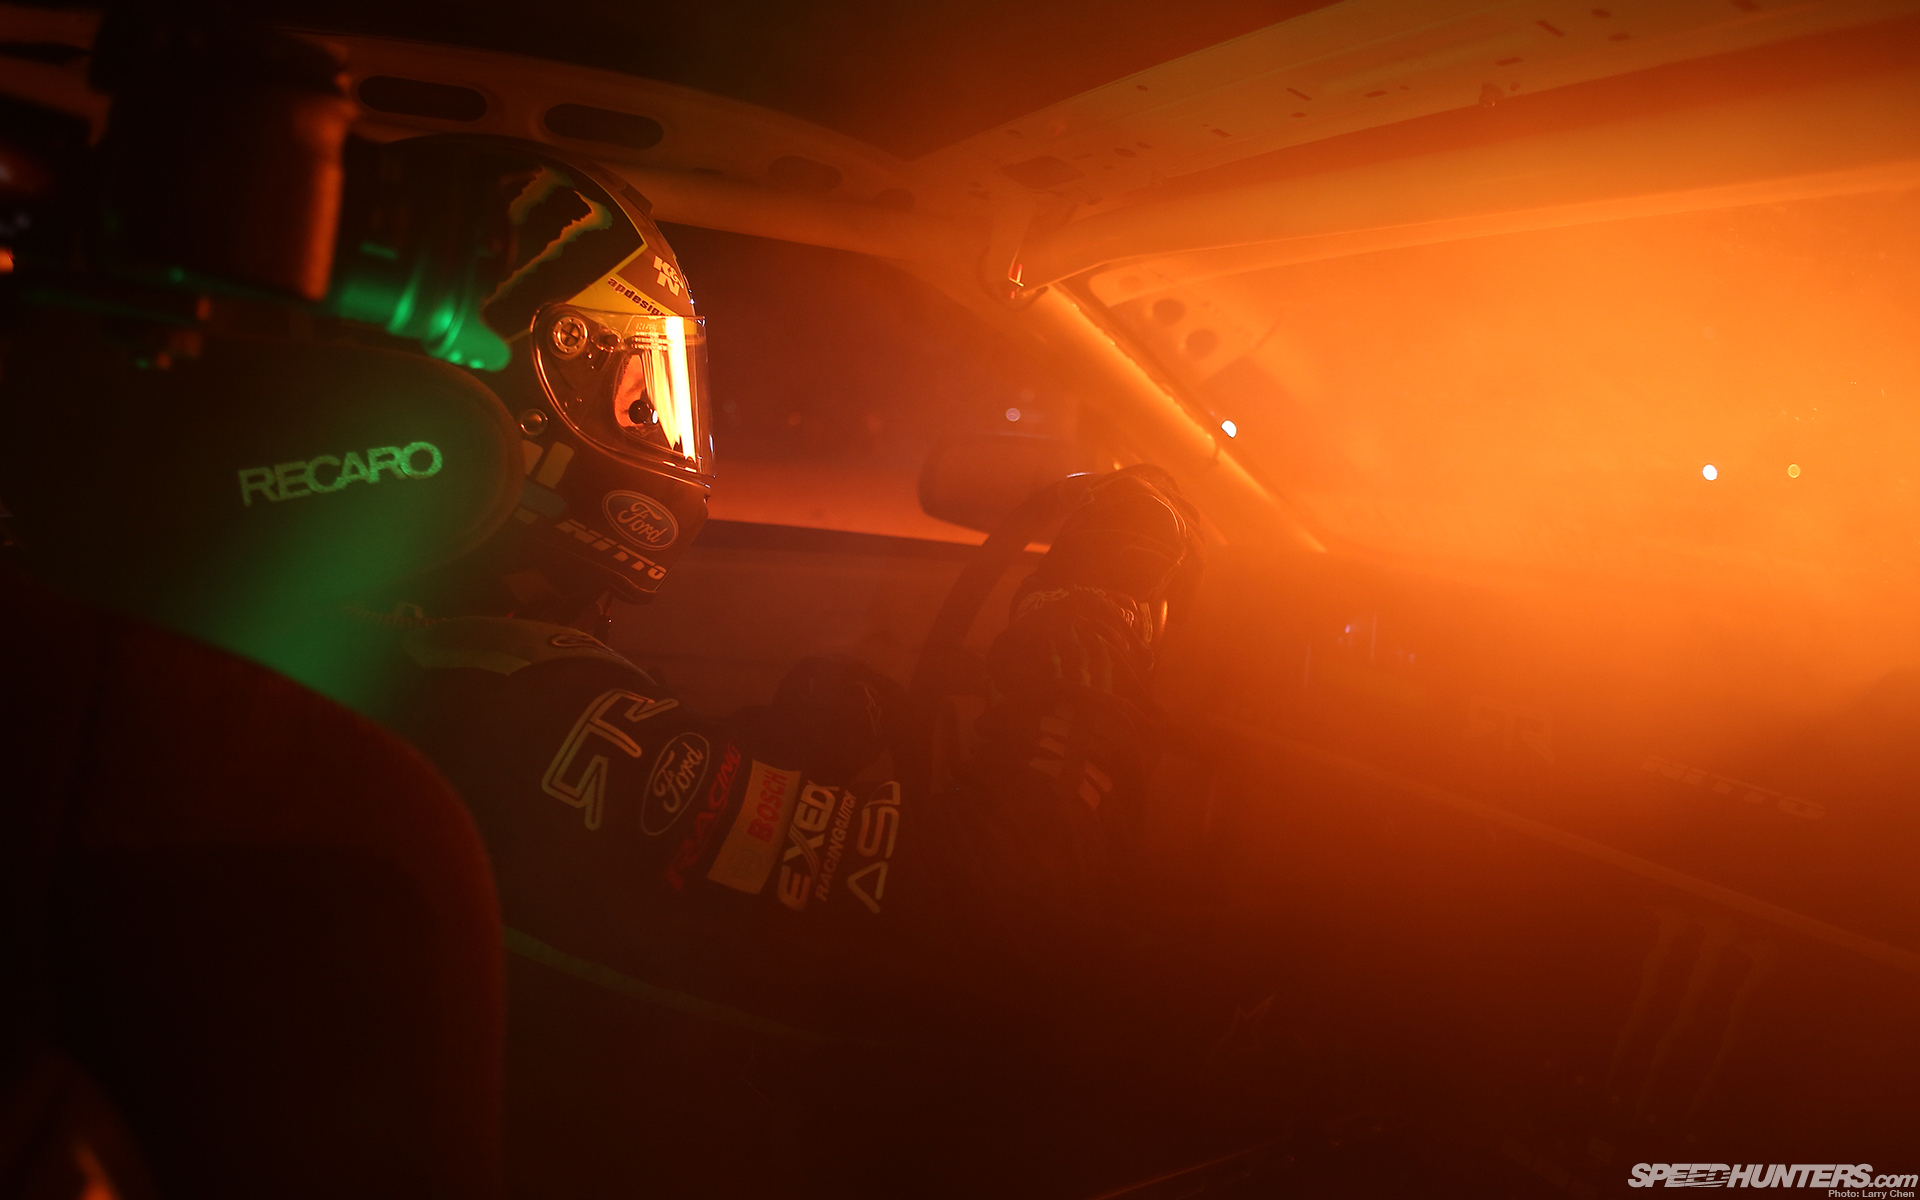 Mustang Interior Race Car Light Ford Tuning Drift Glow Helmet Racing Wallpaper  1920x1200